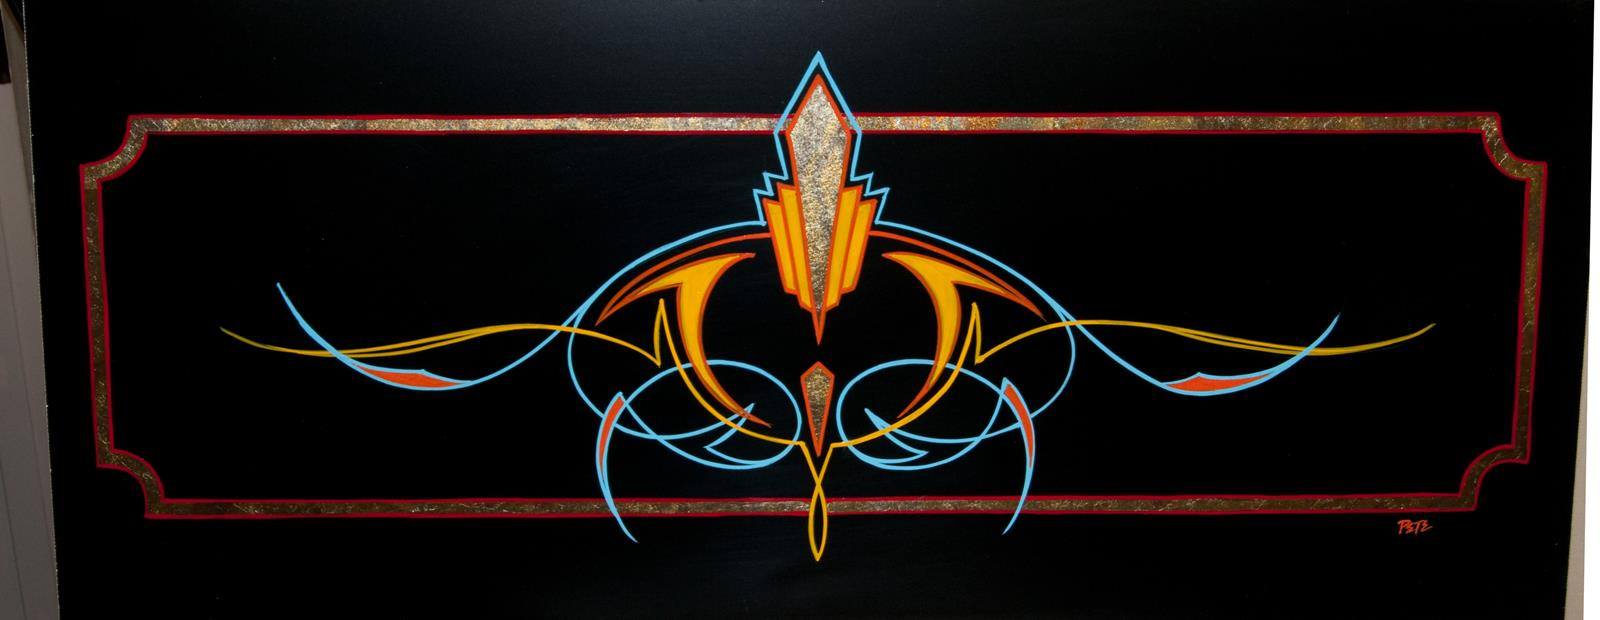 pinstriping example